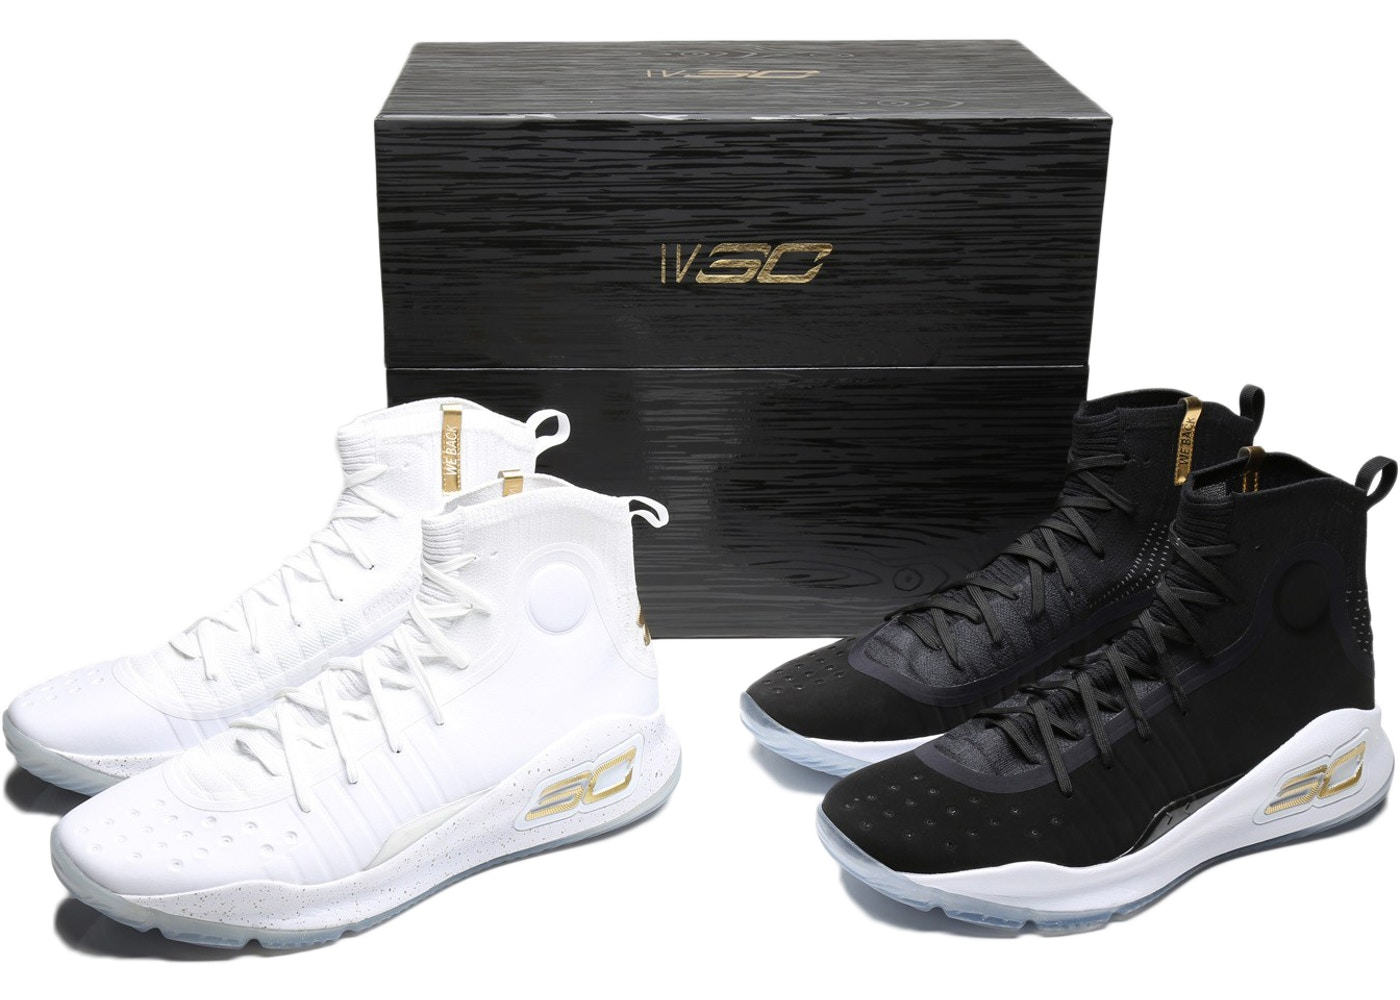 on sale eea0a f6d9b Under Armour Curry 4 Champ Pack